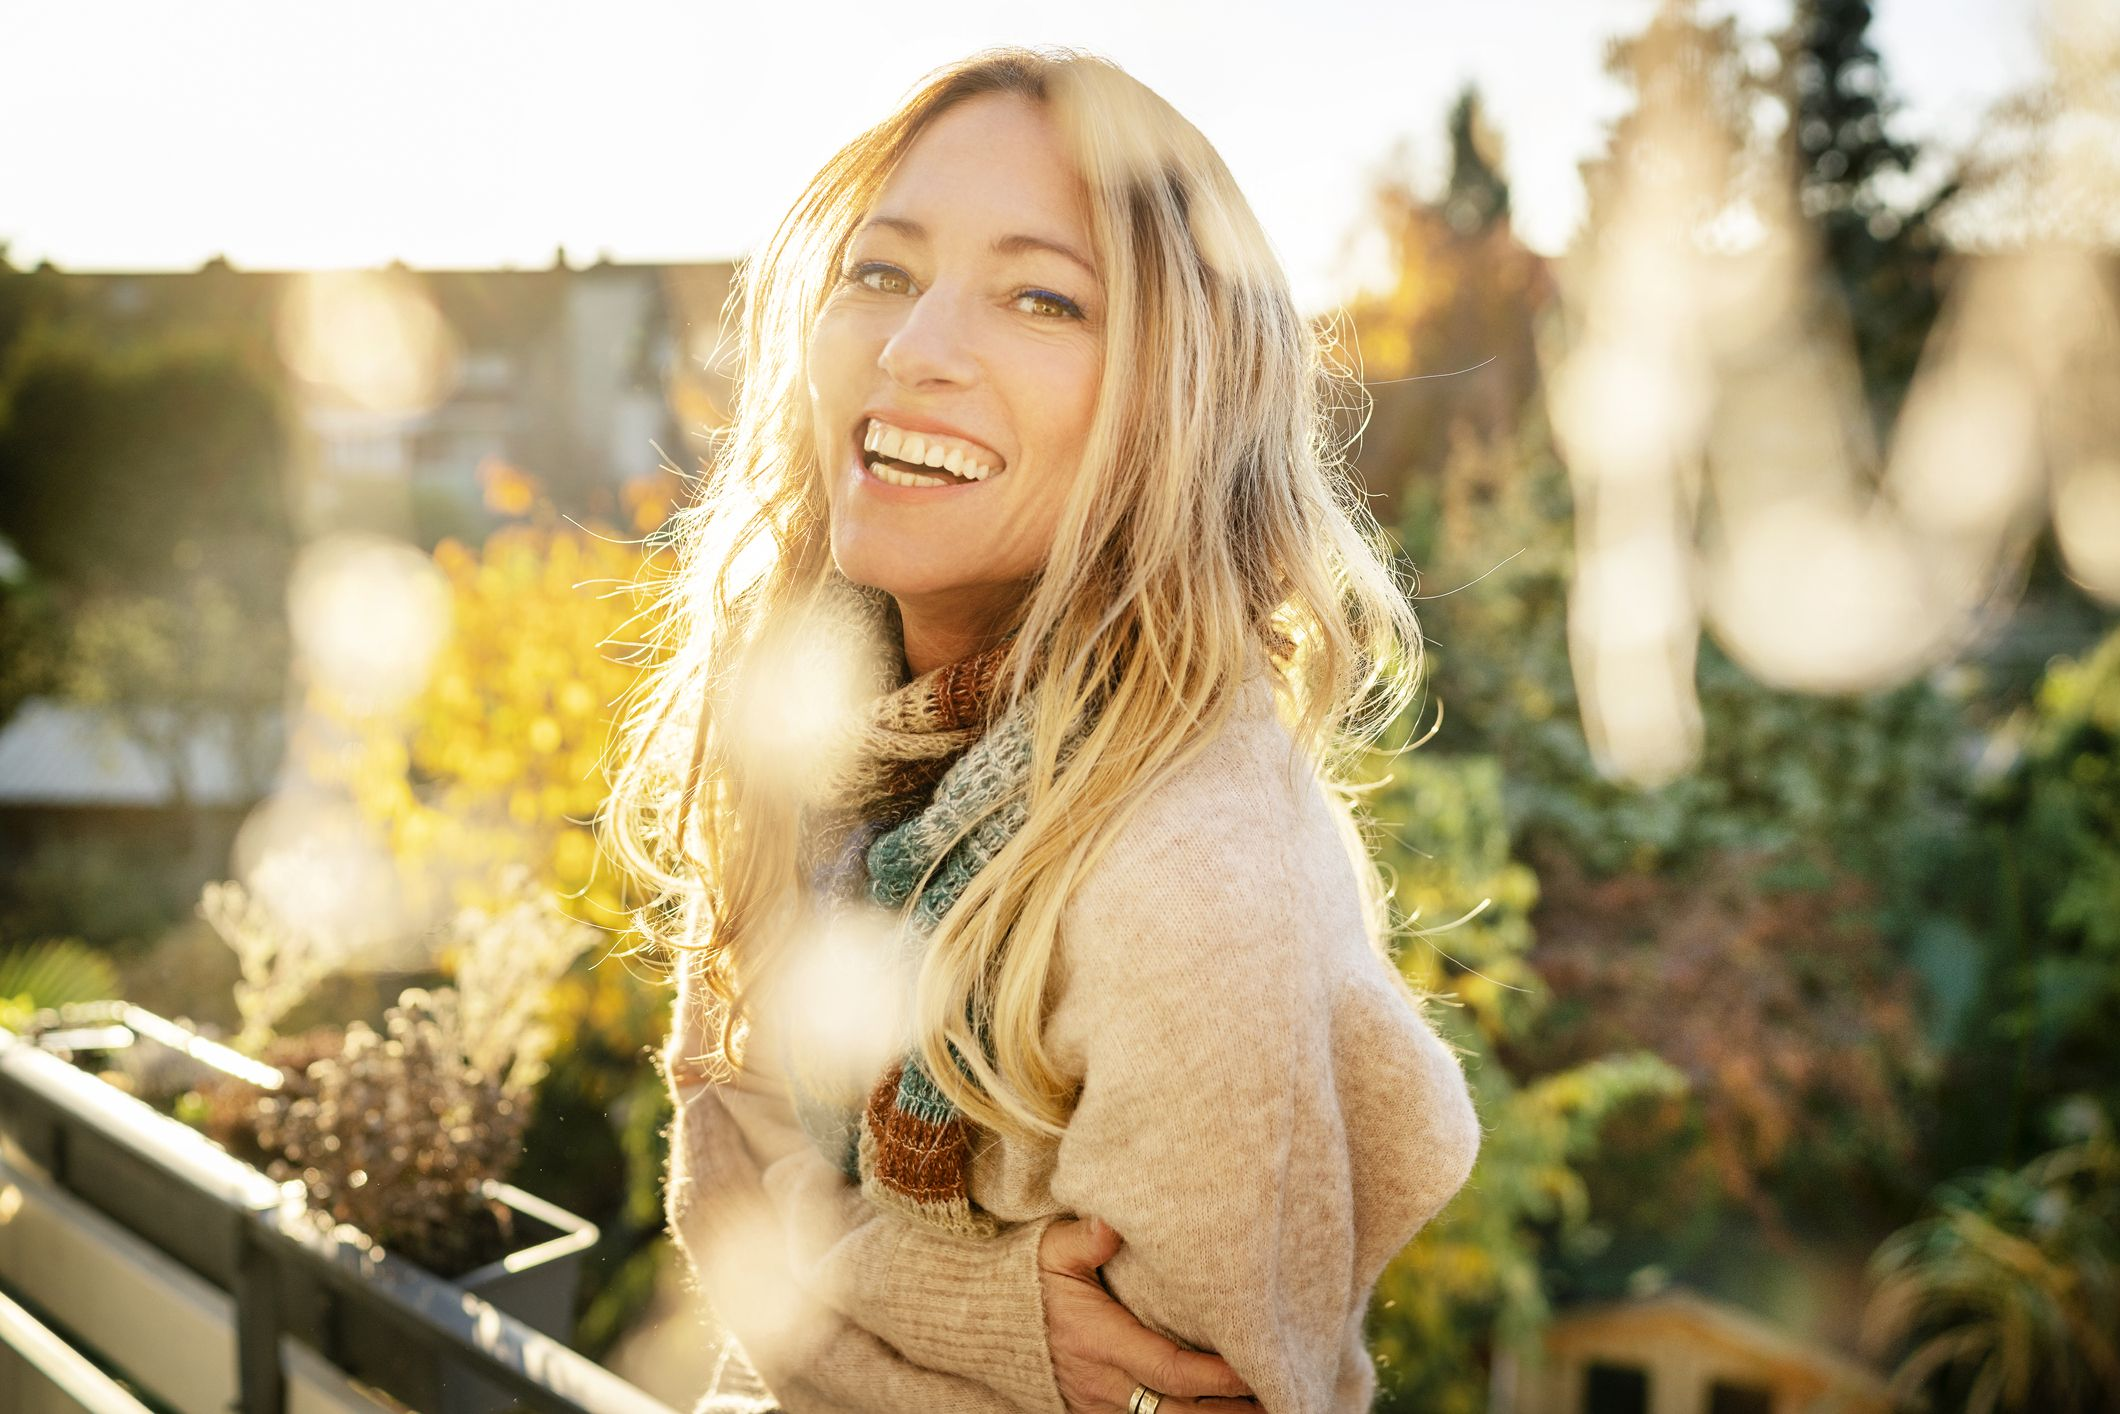 Skincare in Your 40s: This Is the Routine You Need to Follow